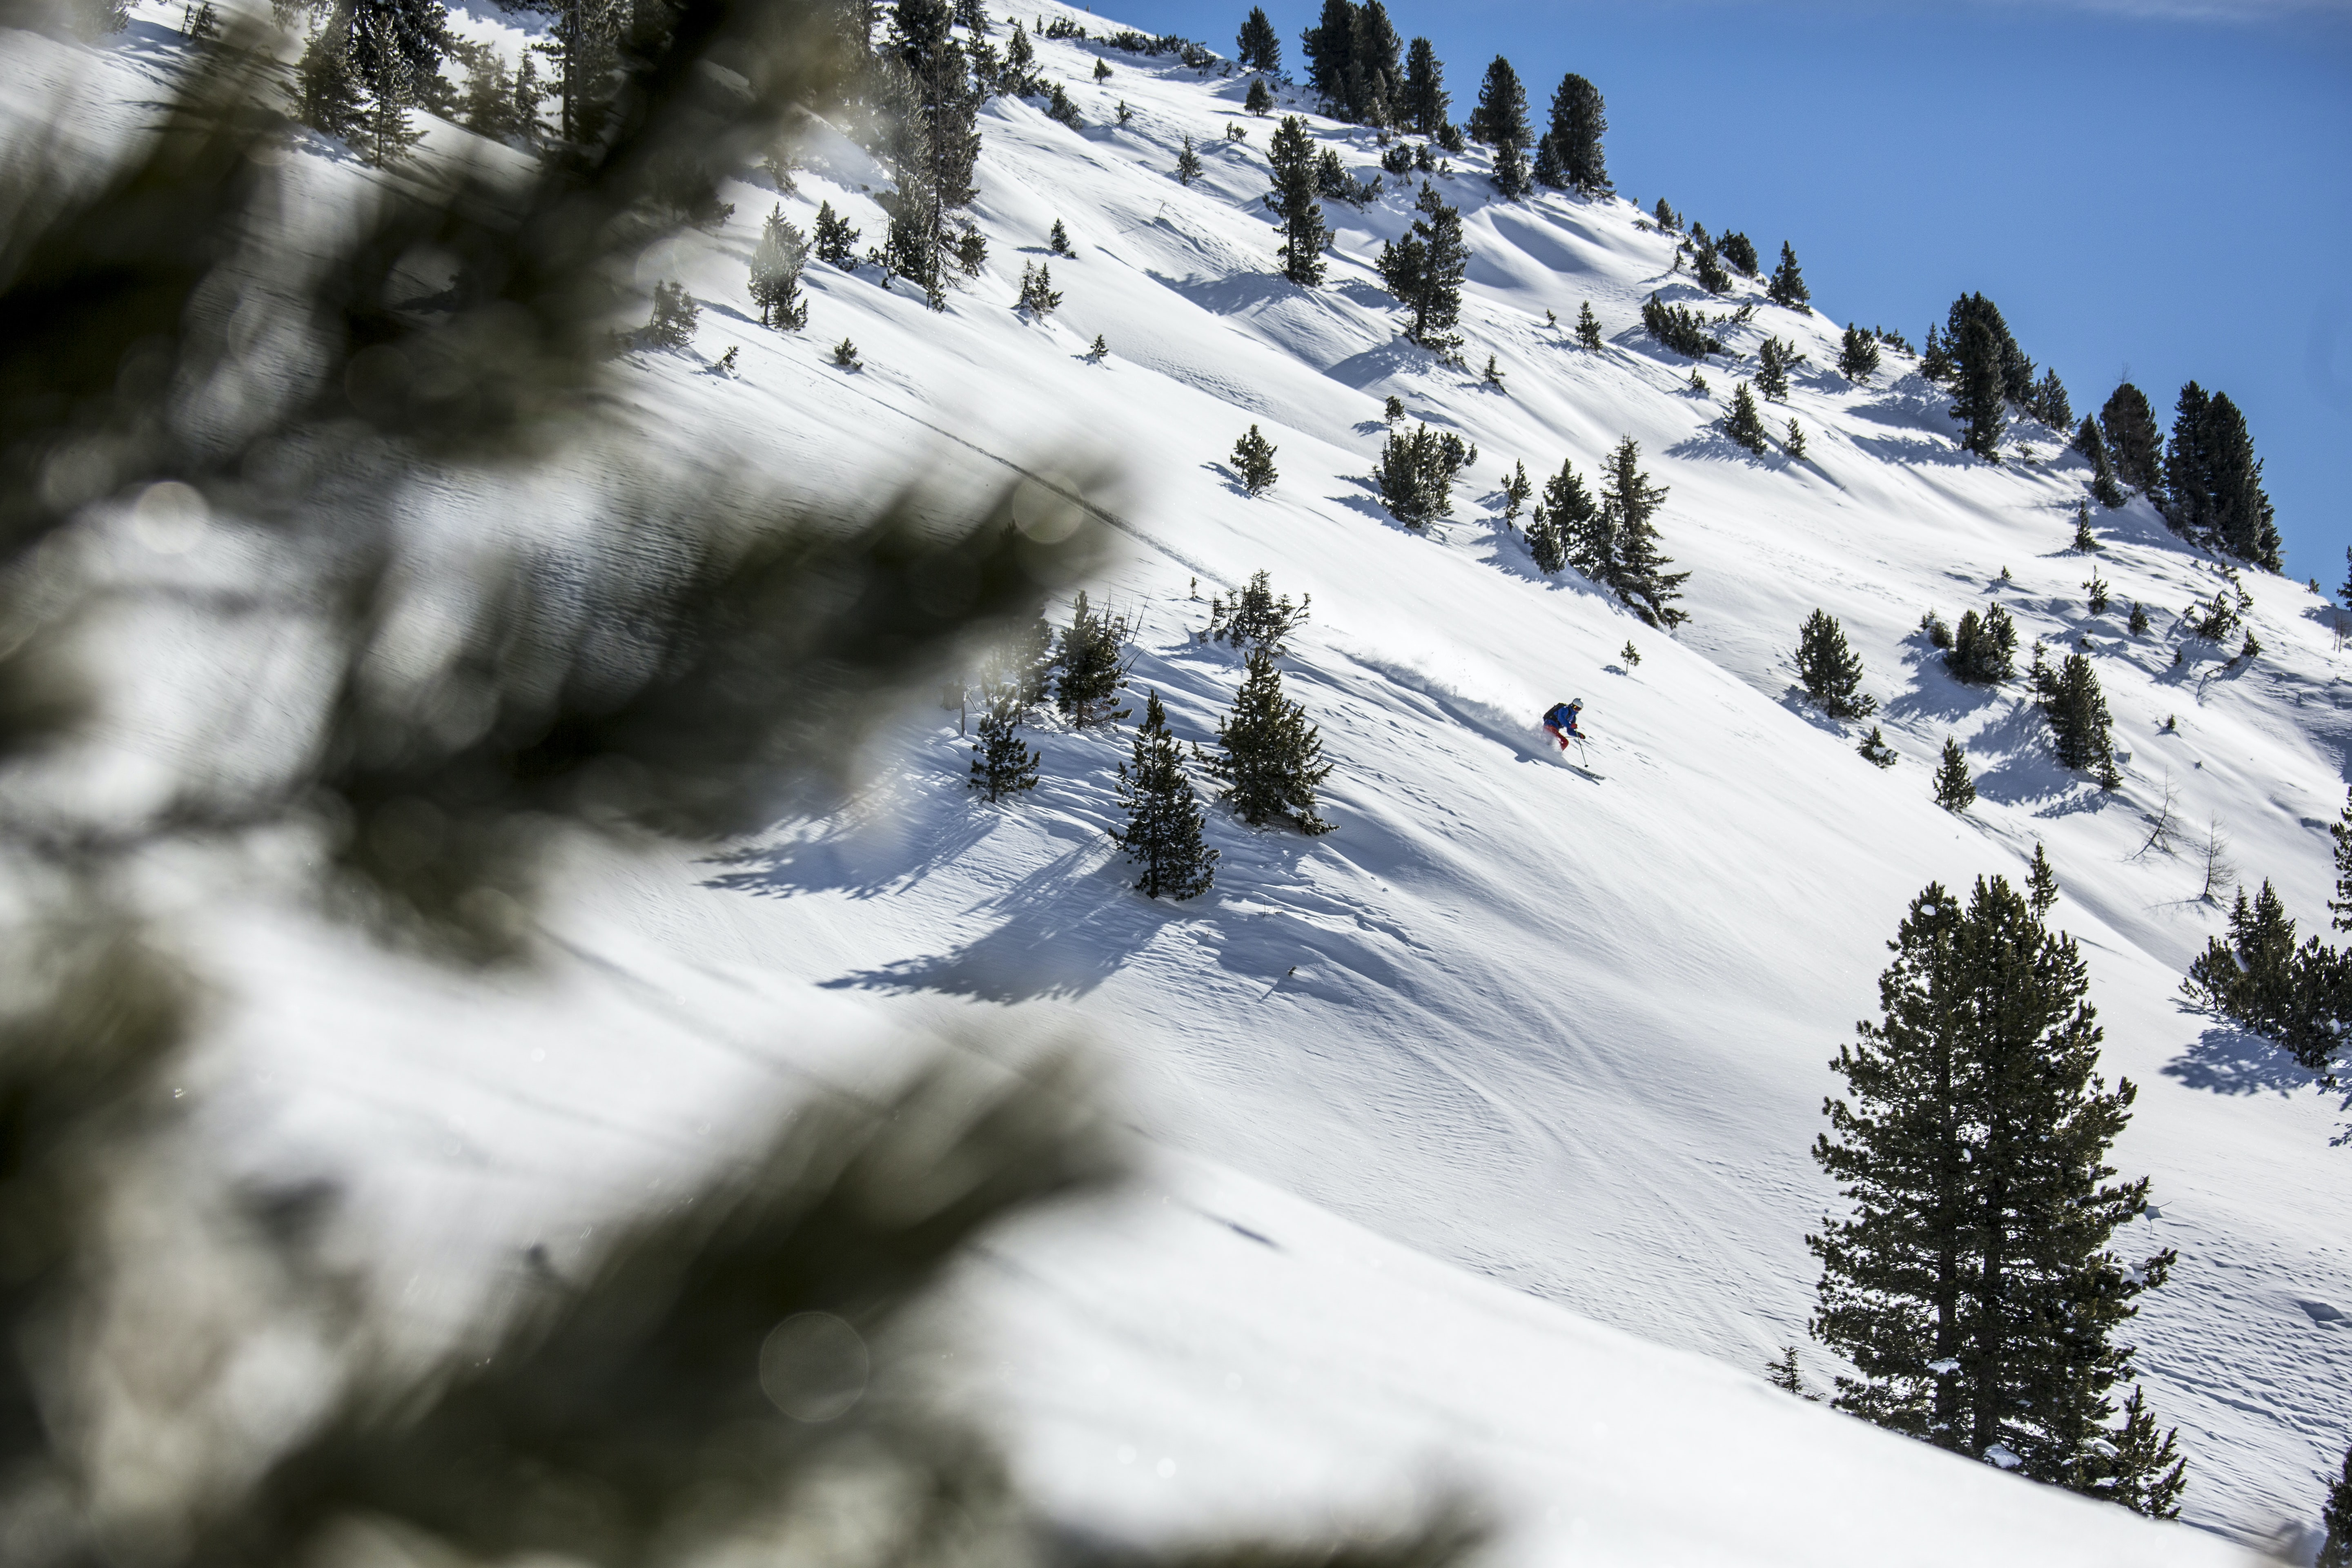 View through pine needles where a man is skiing for sport on the slopes of Wildkogel